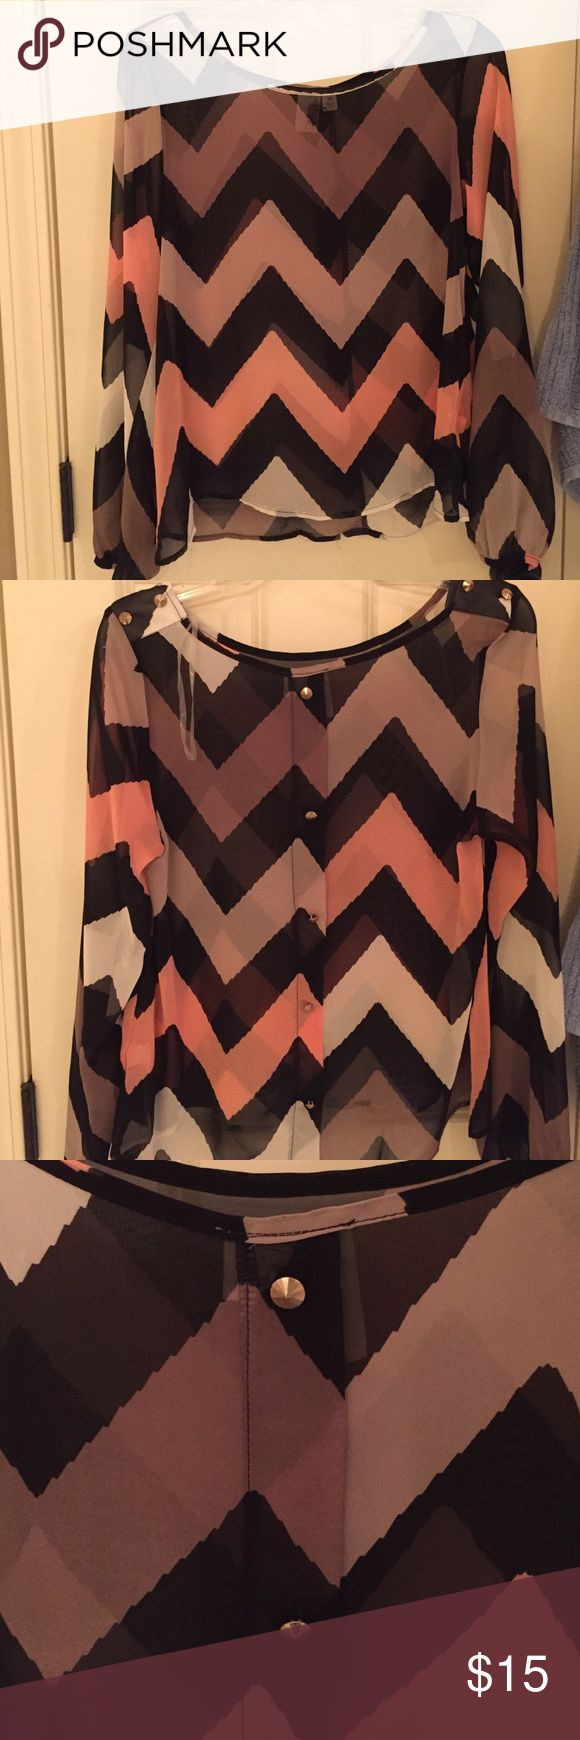 Polyester chevron top with spike embellishment Only worn once. This cute top could be worn out and styled with a bandeau, white jeans and heels. Purchased from Francesca's. Tops Blouses